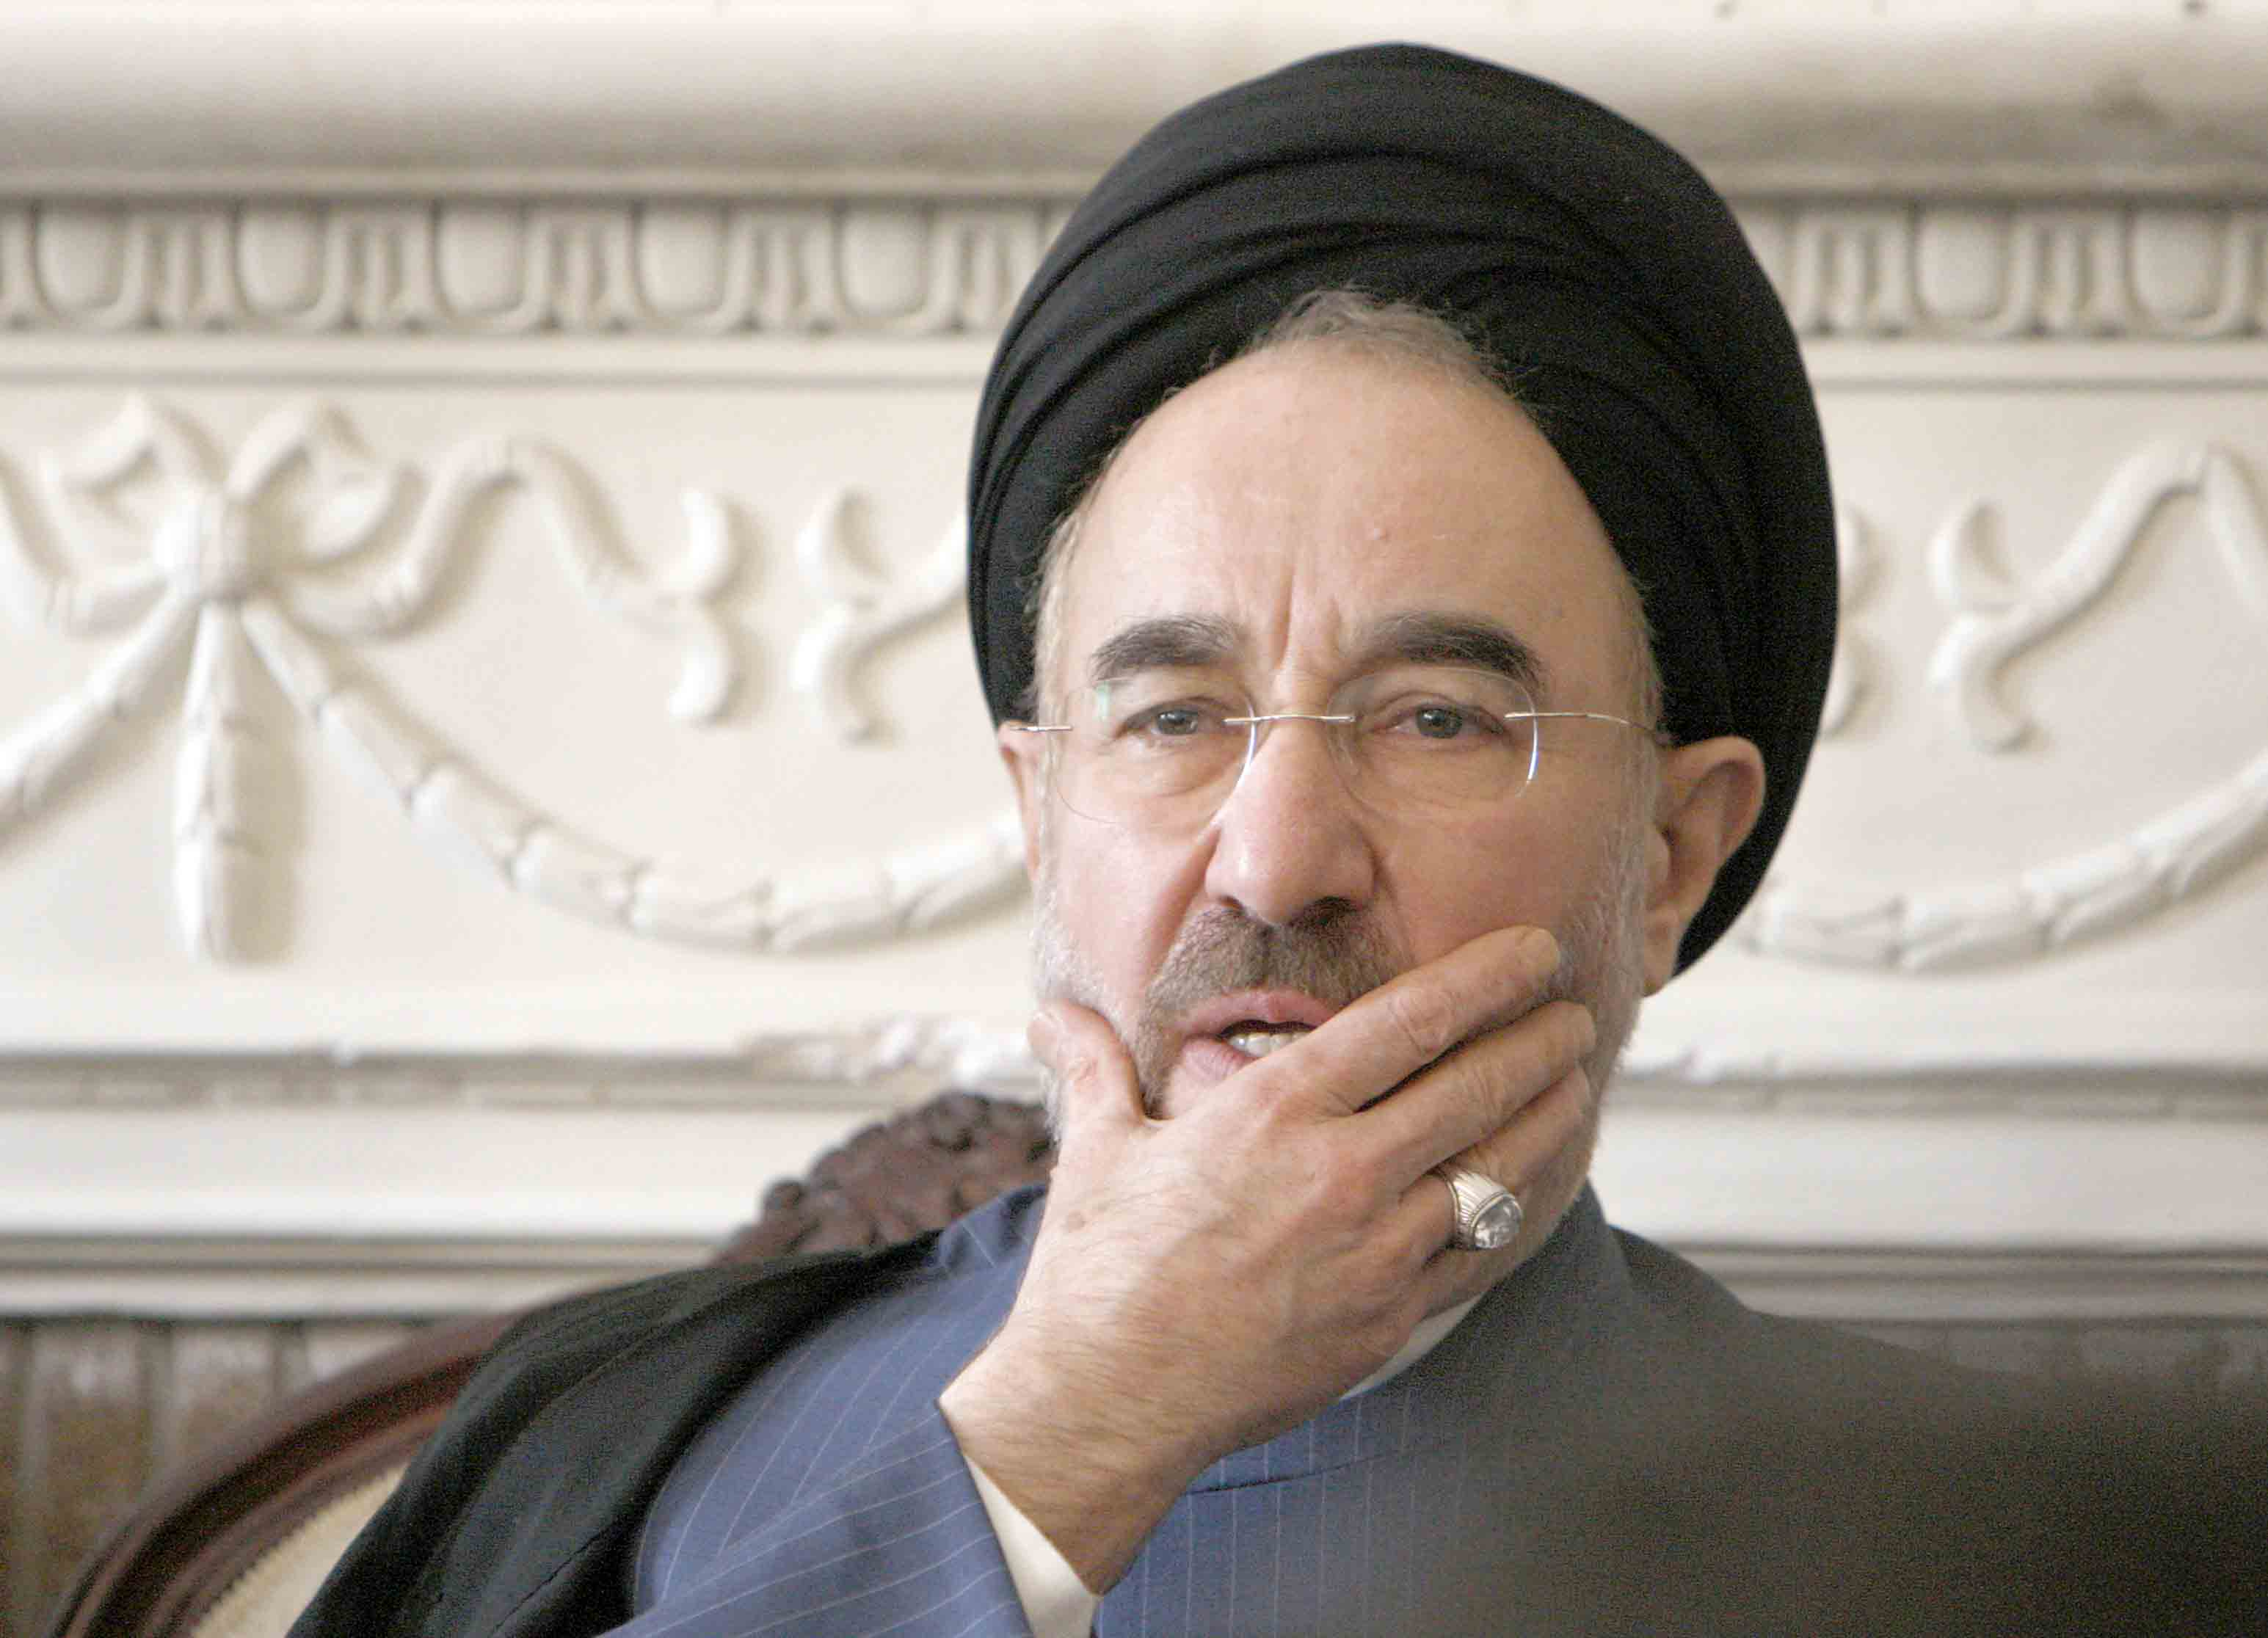 A file picture shows former Iranian President Mohammad Khatami during a meeting with supporters in Tehran. (AFP)